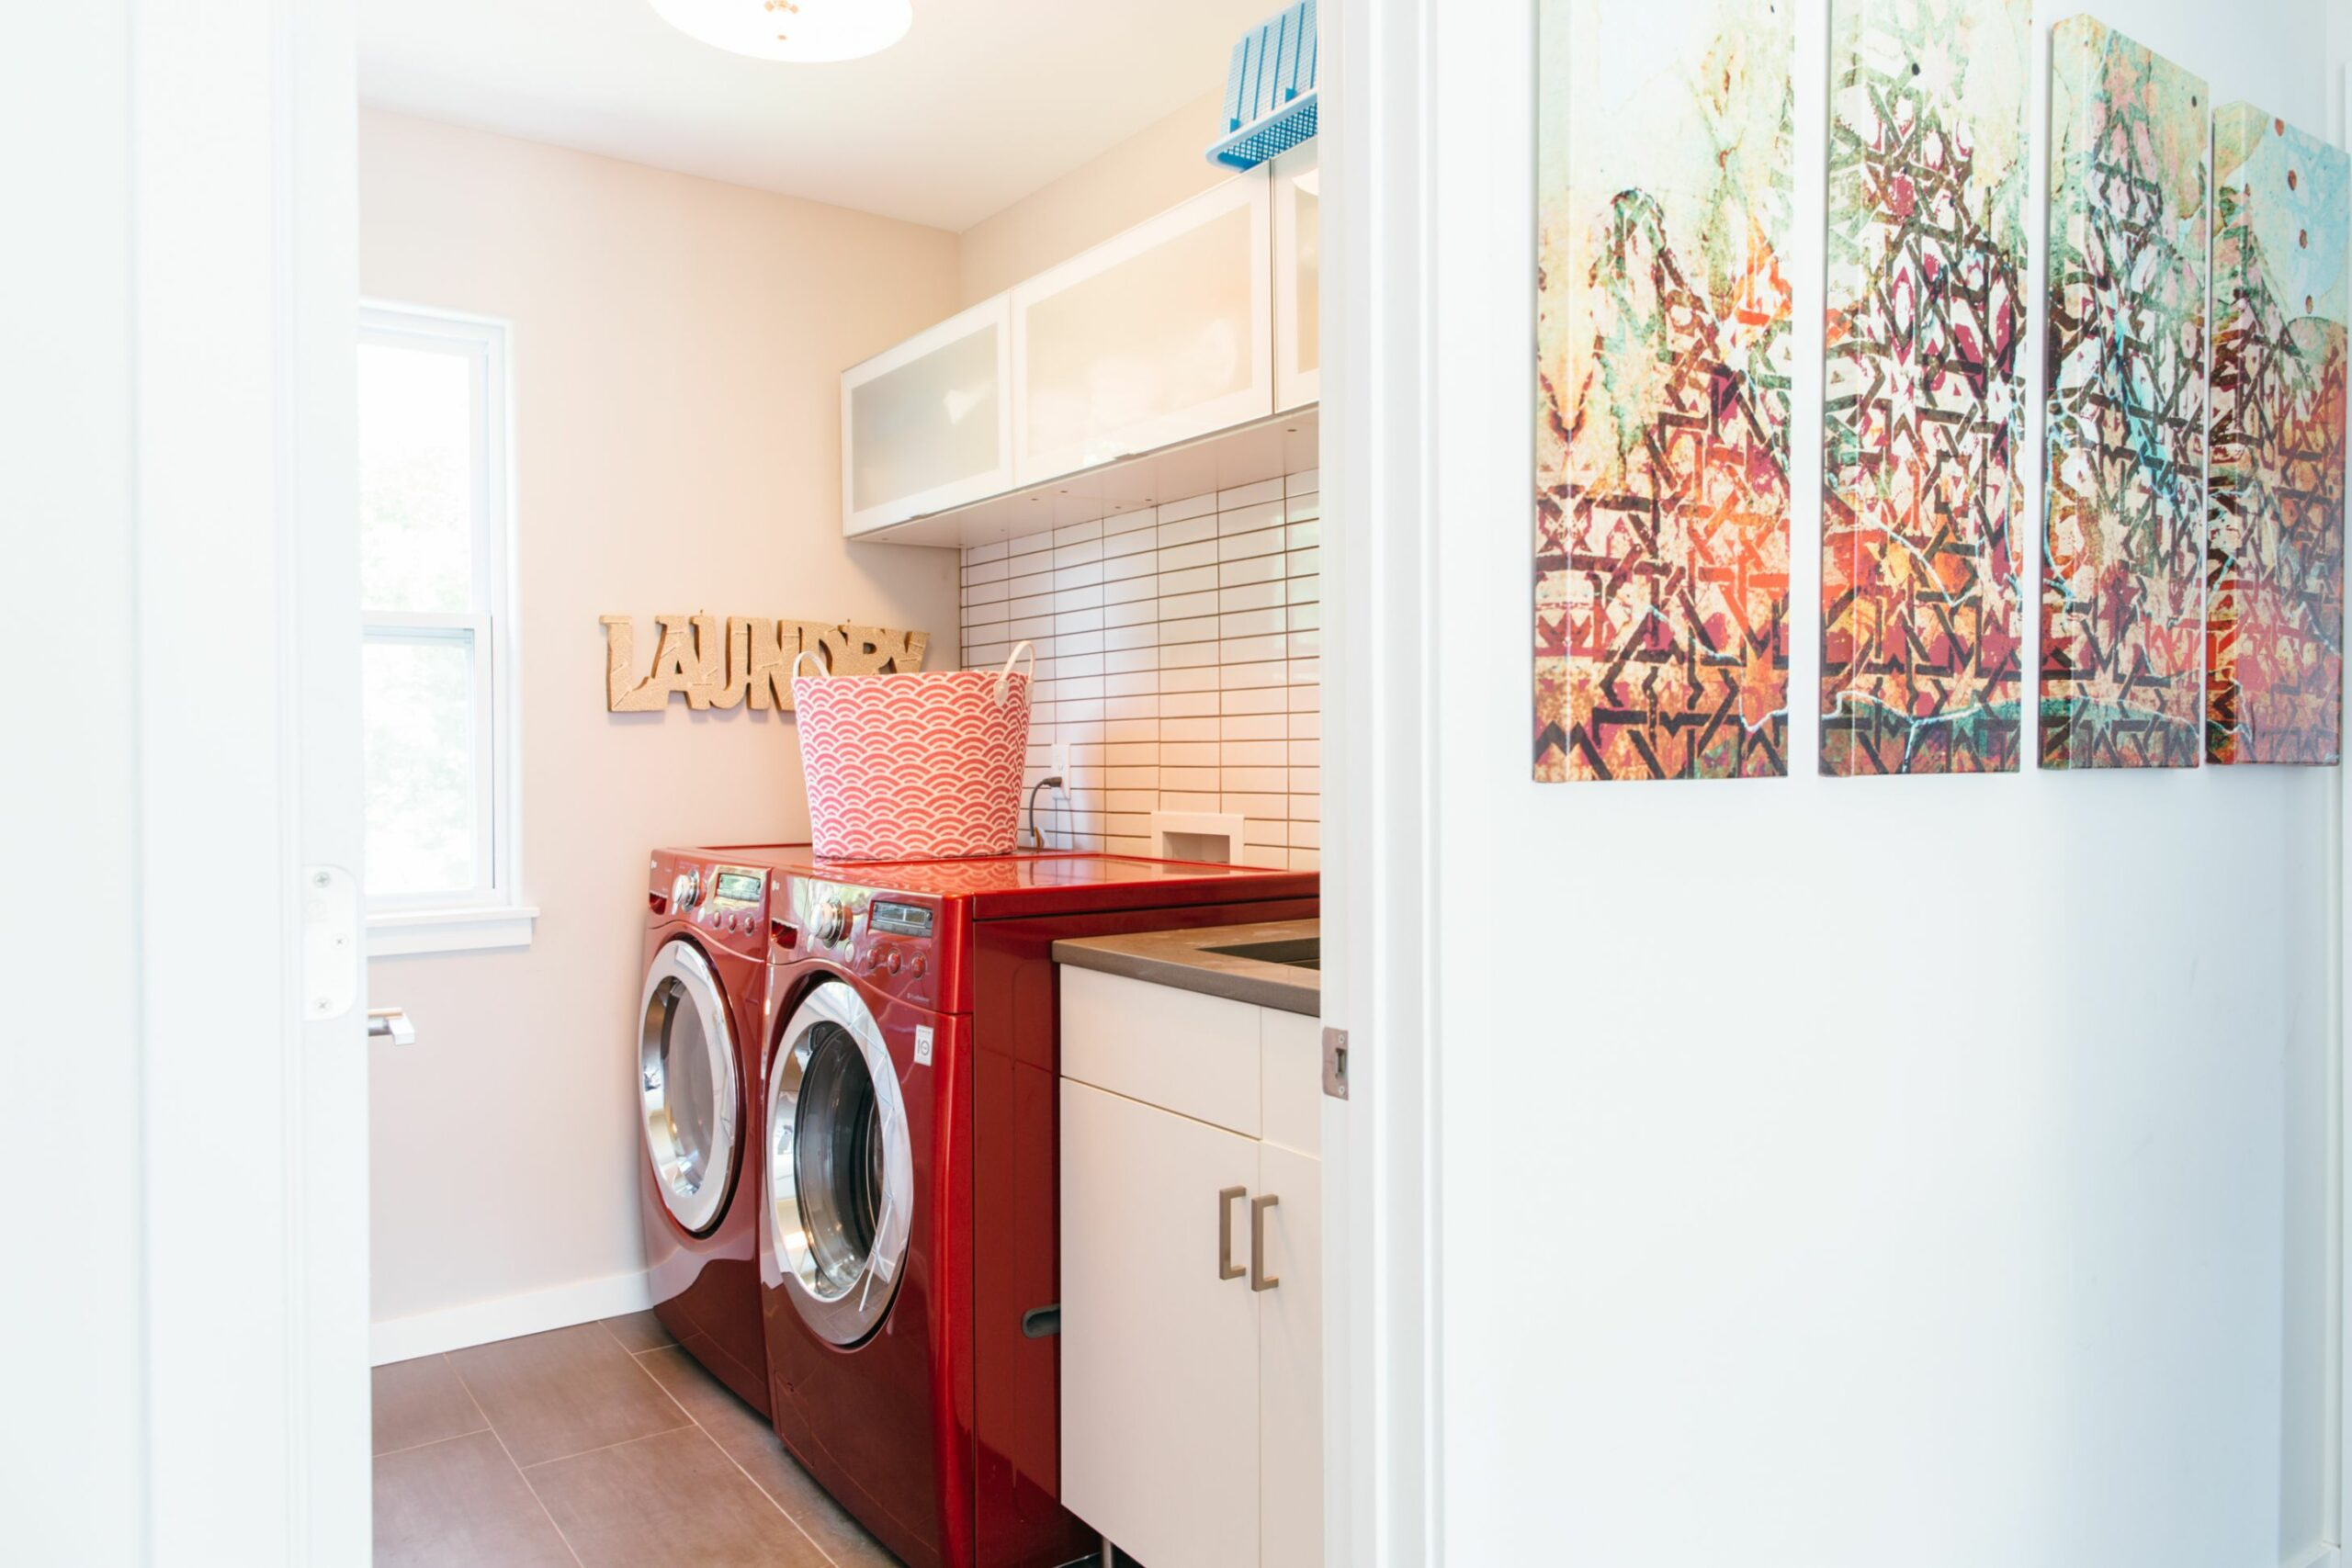 Cheap Laundry Room Upgrades | Apartment Therapy